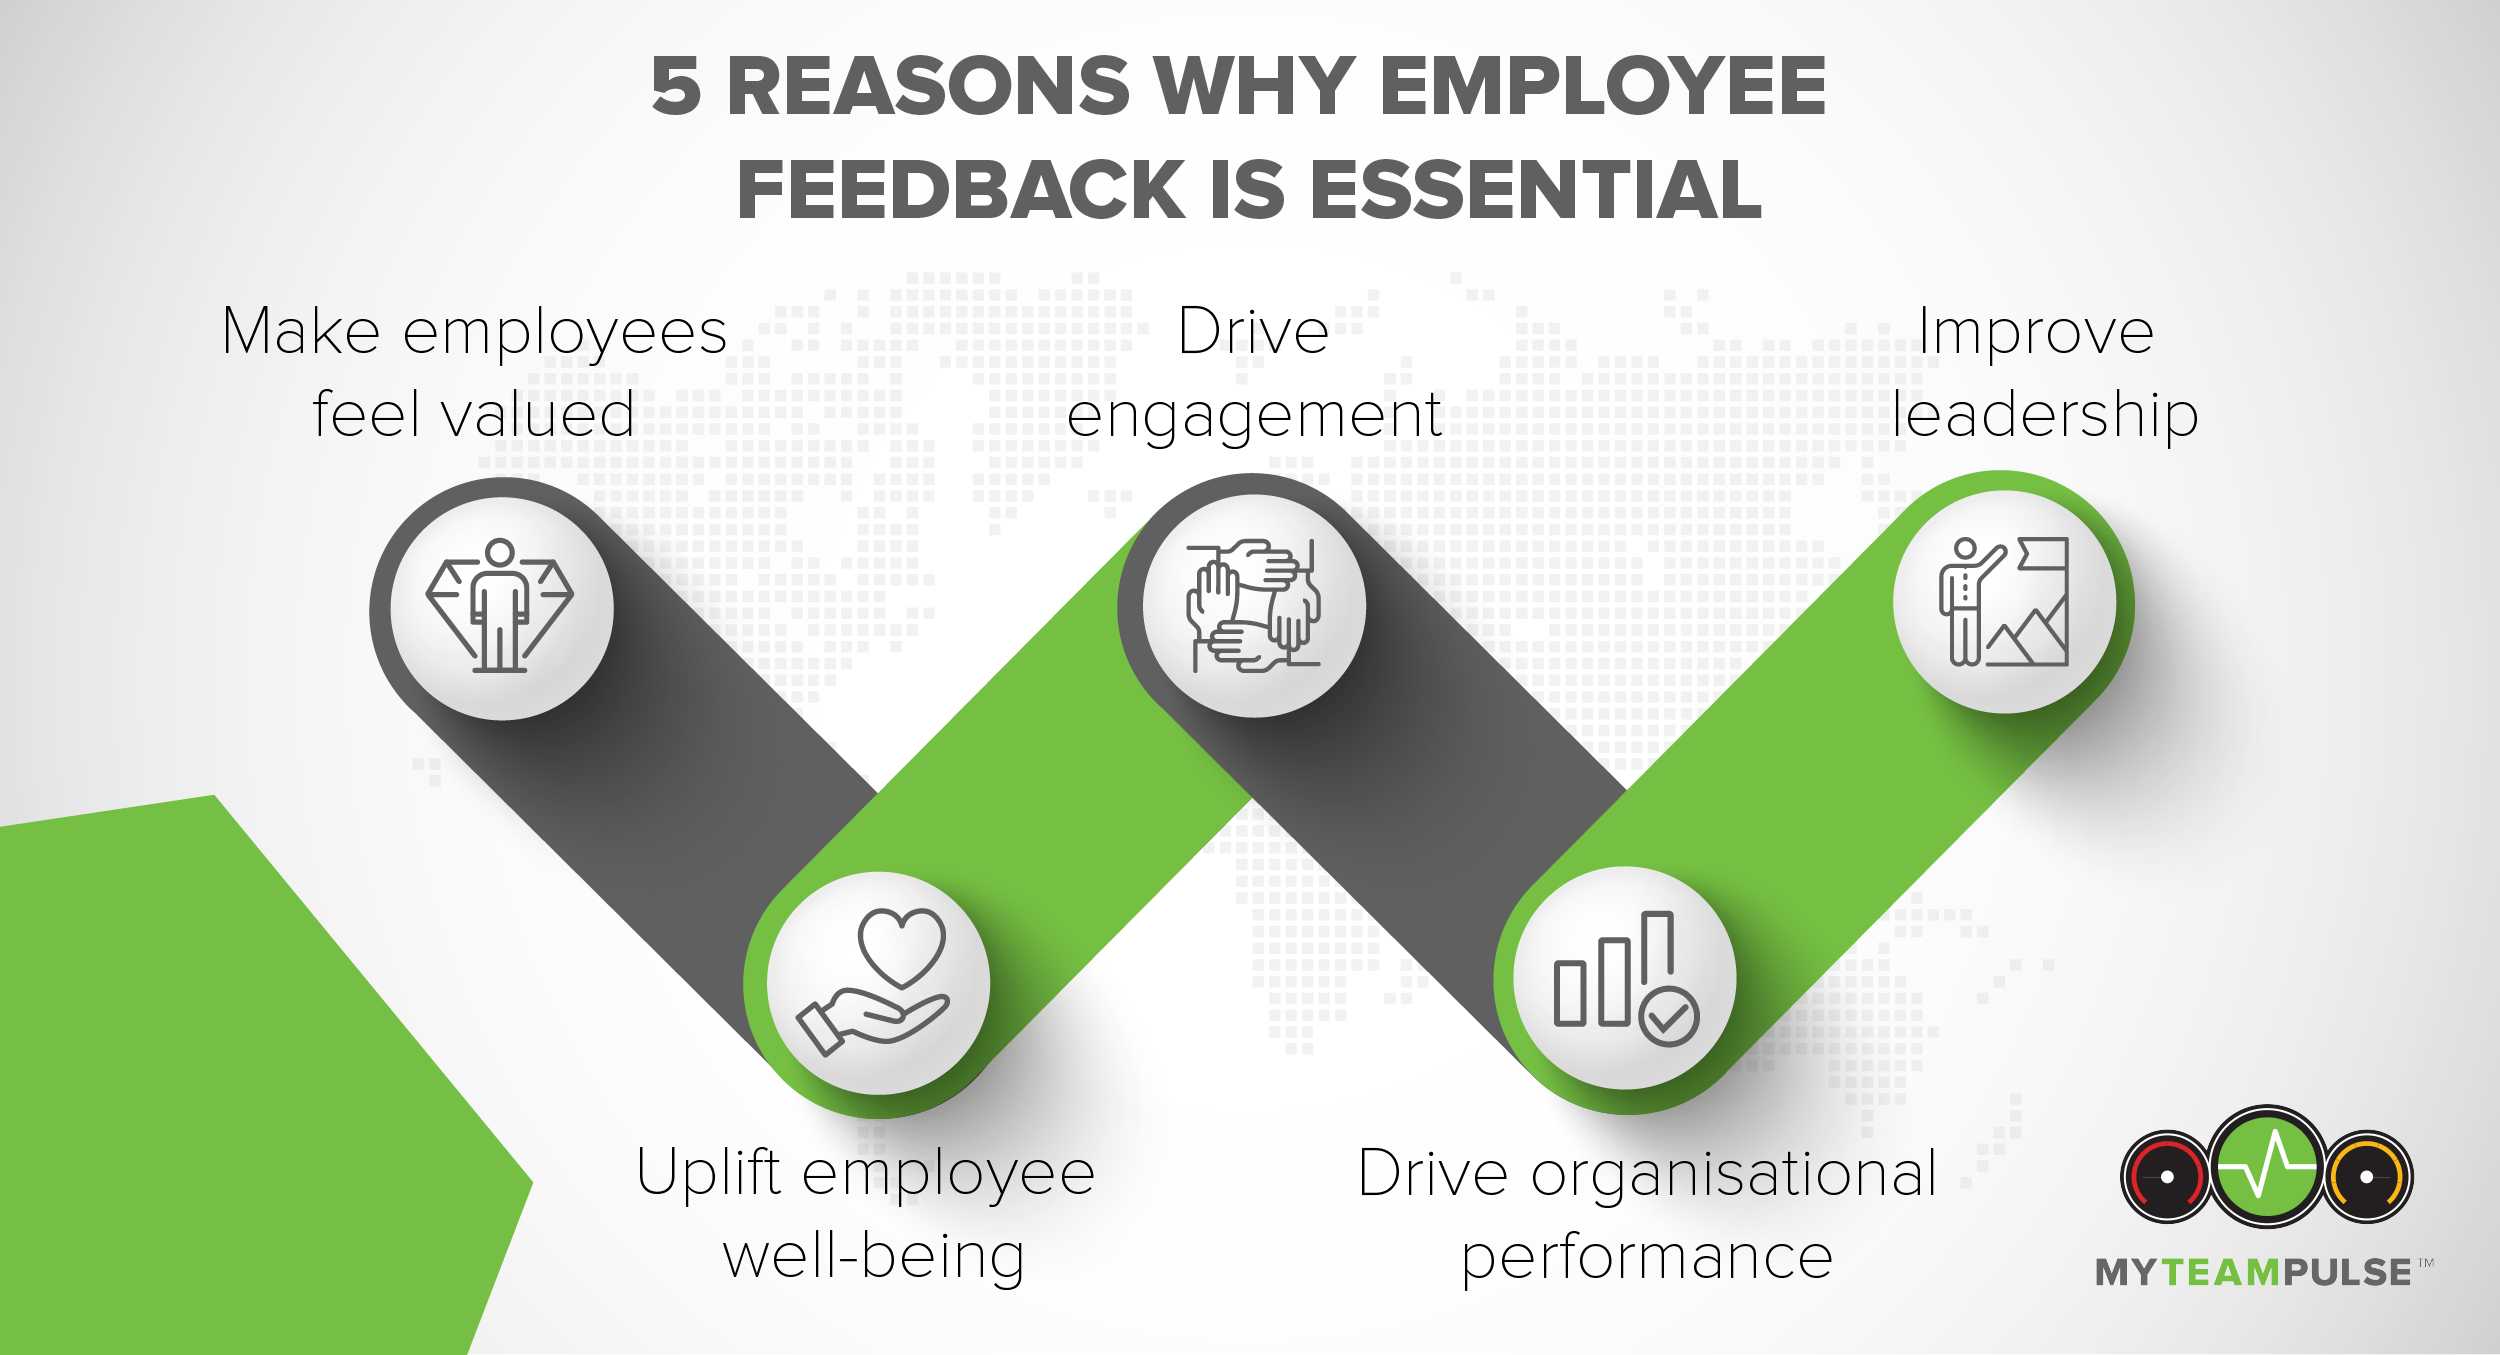 Employee feedback is essential